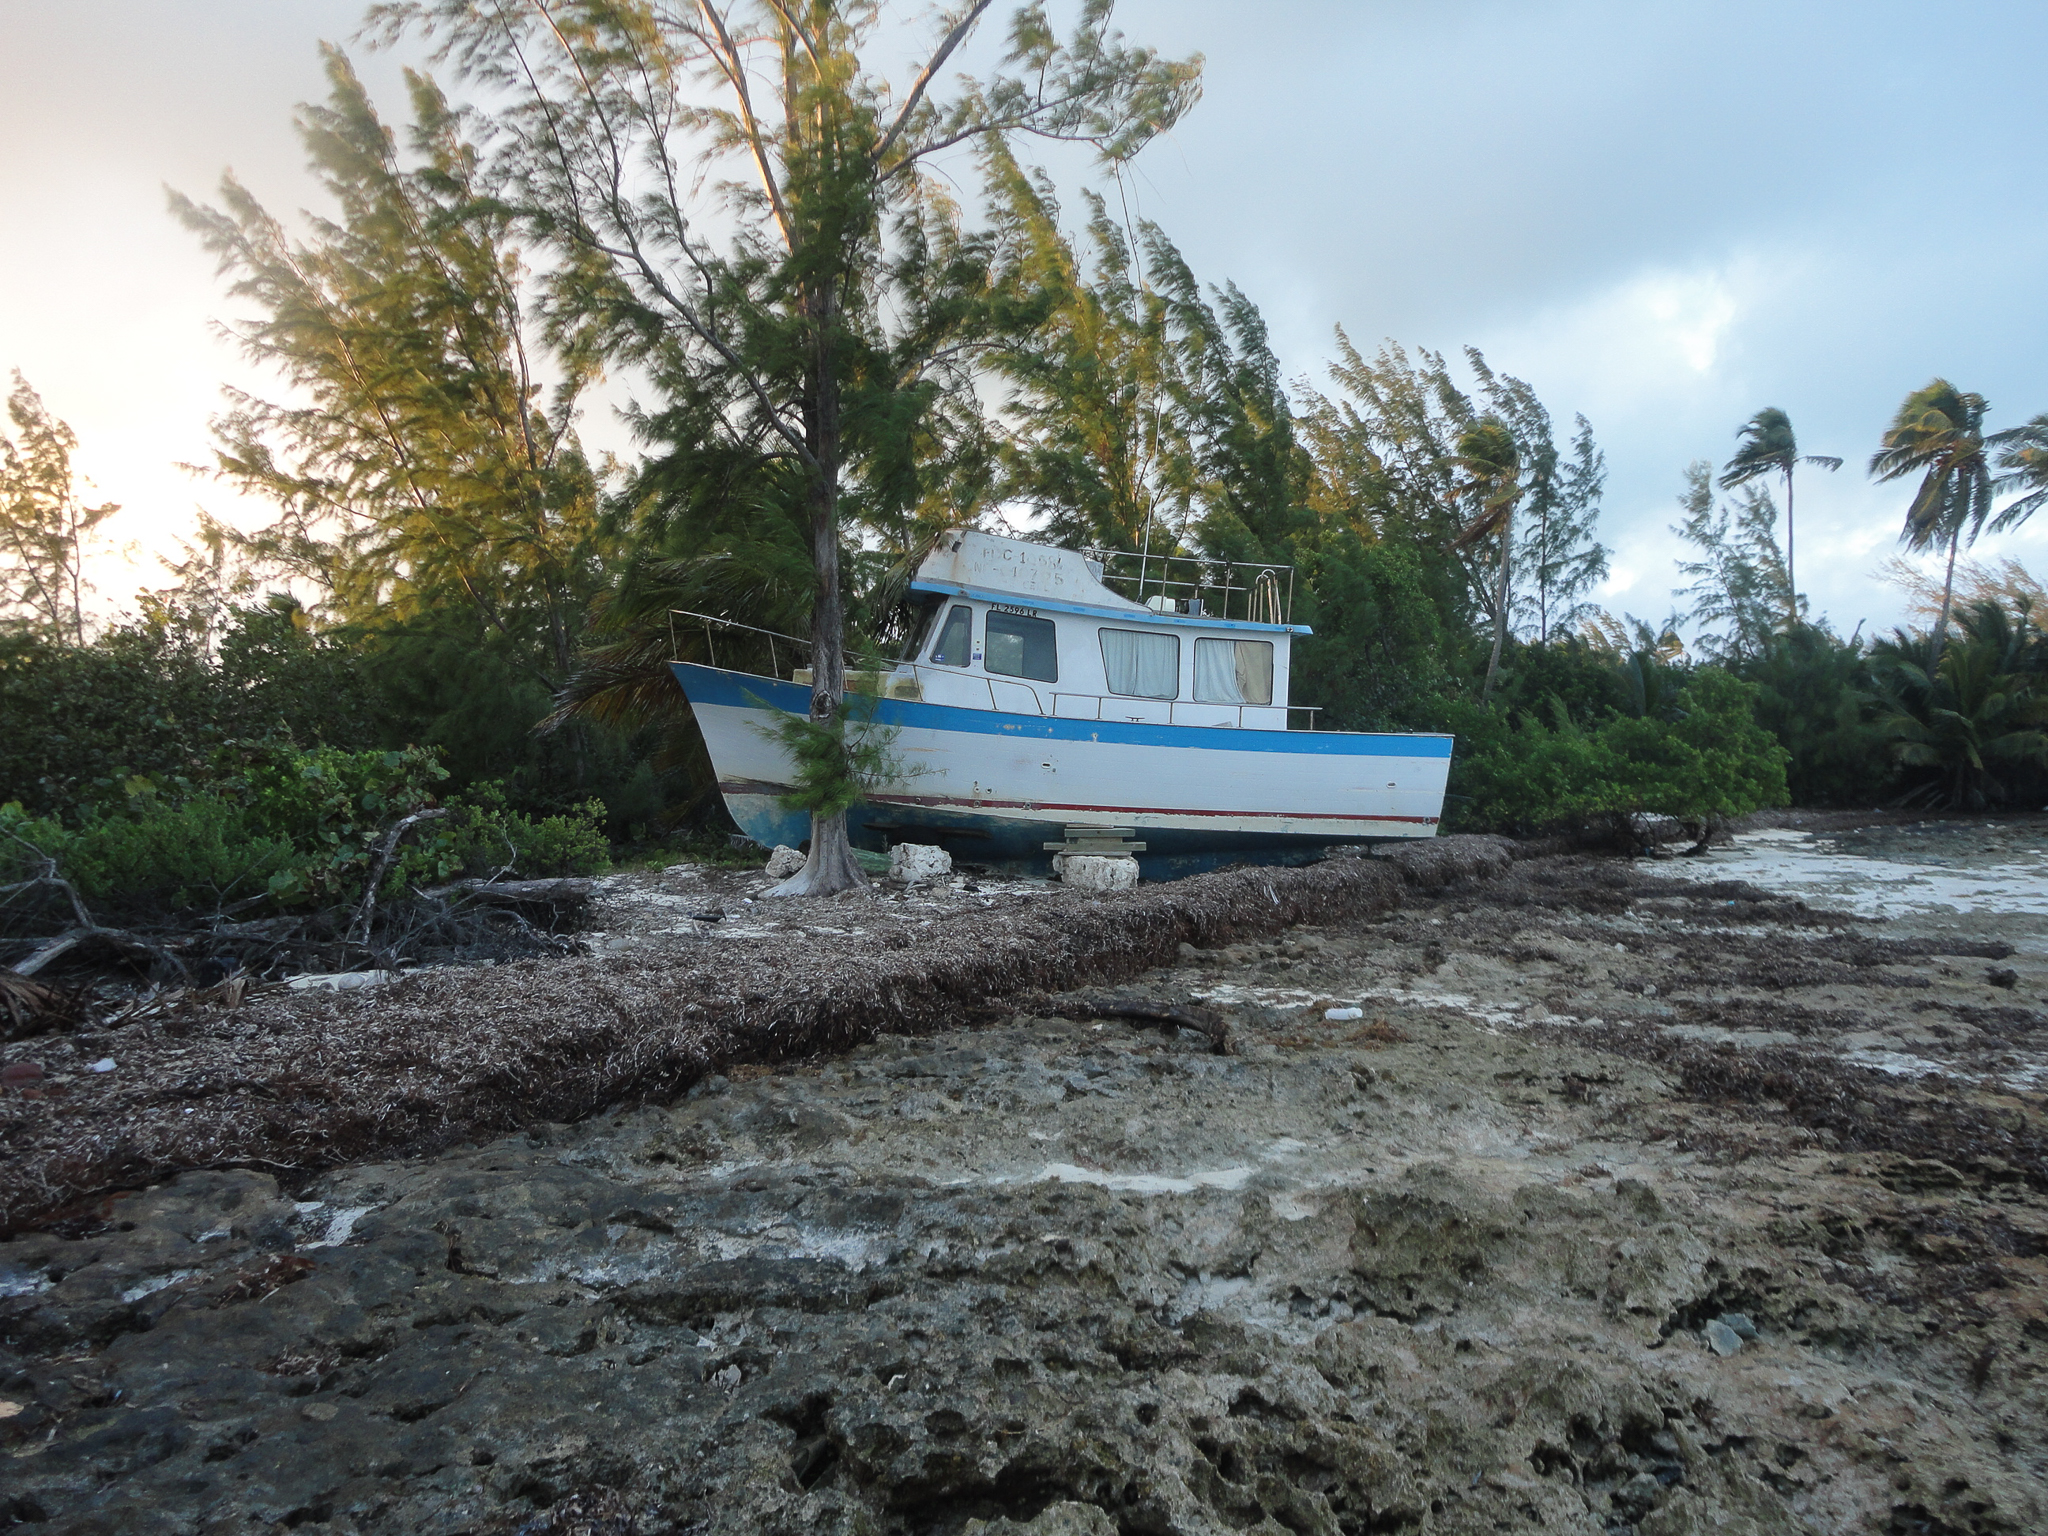 Signs of Hurricane Matthew aren't hard to find even months later. The storm snapped trees, toppled cars, leveled homes, and pushed boats far onto shore. Photograph by David Brian Butvill